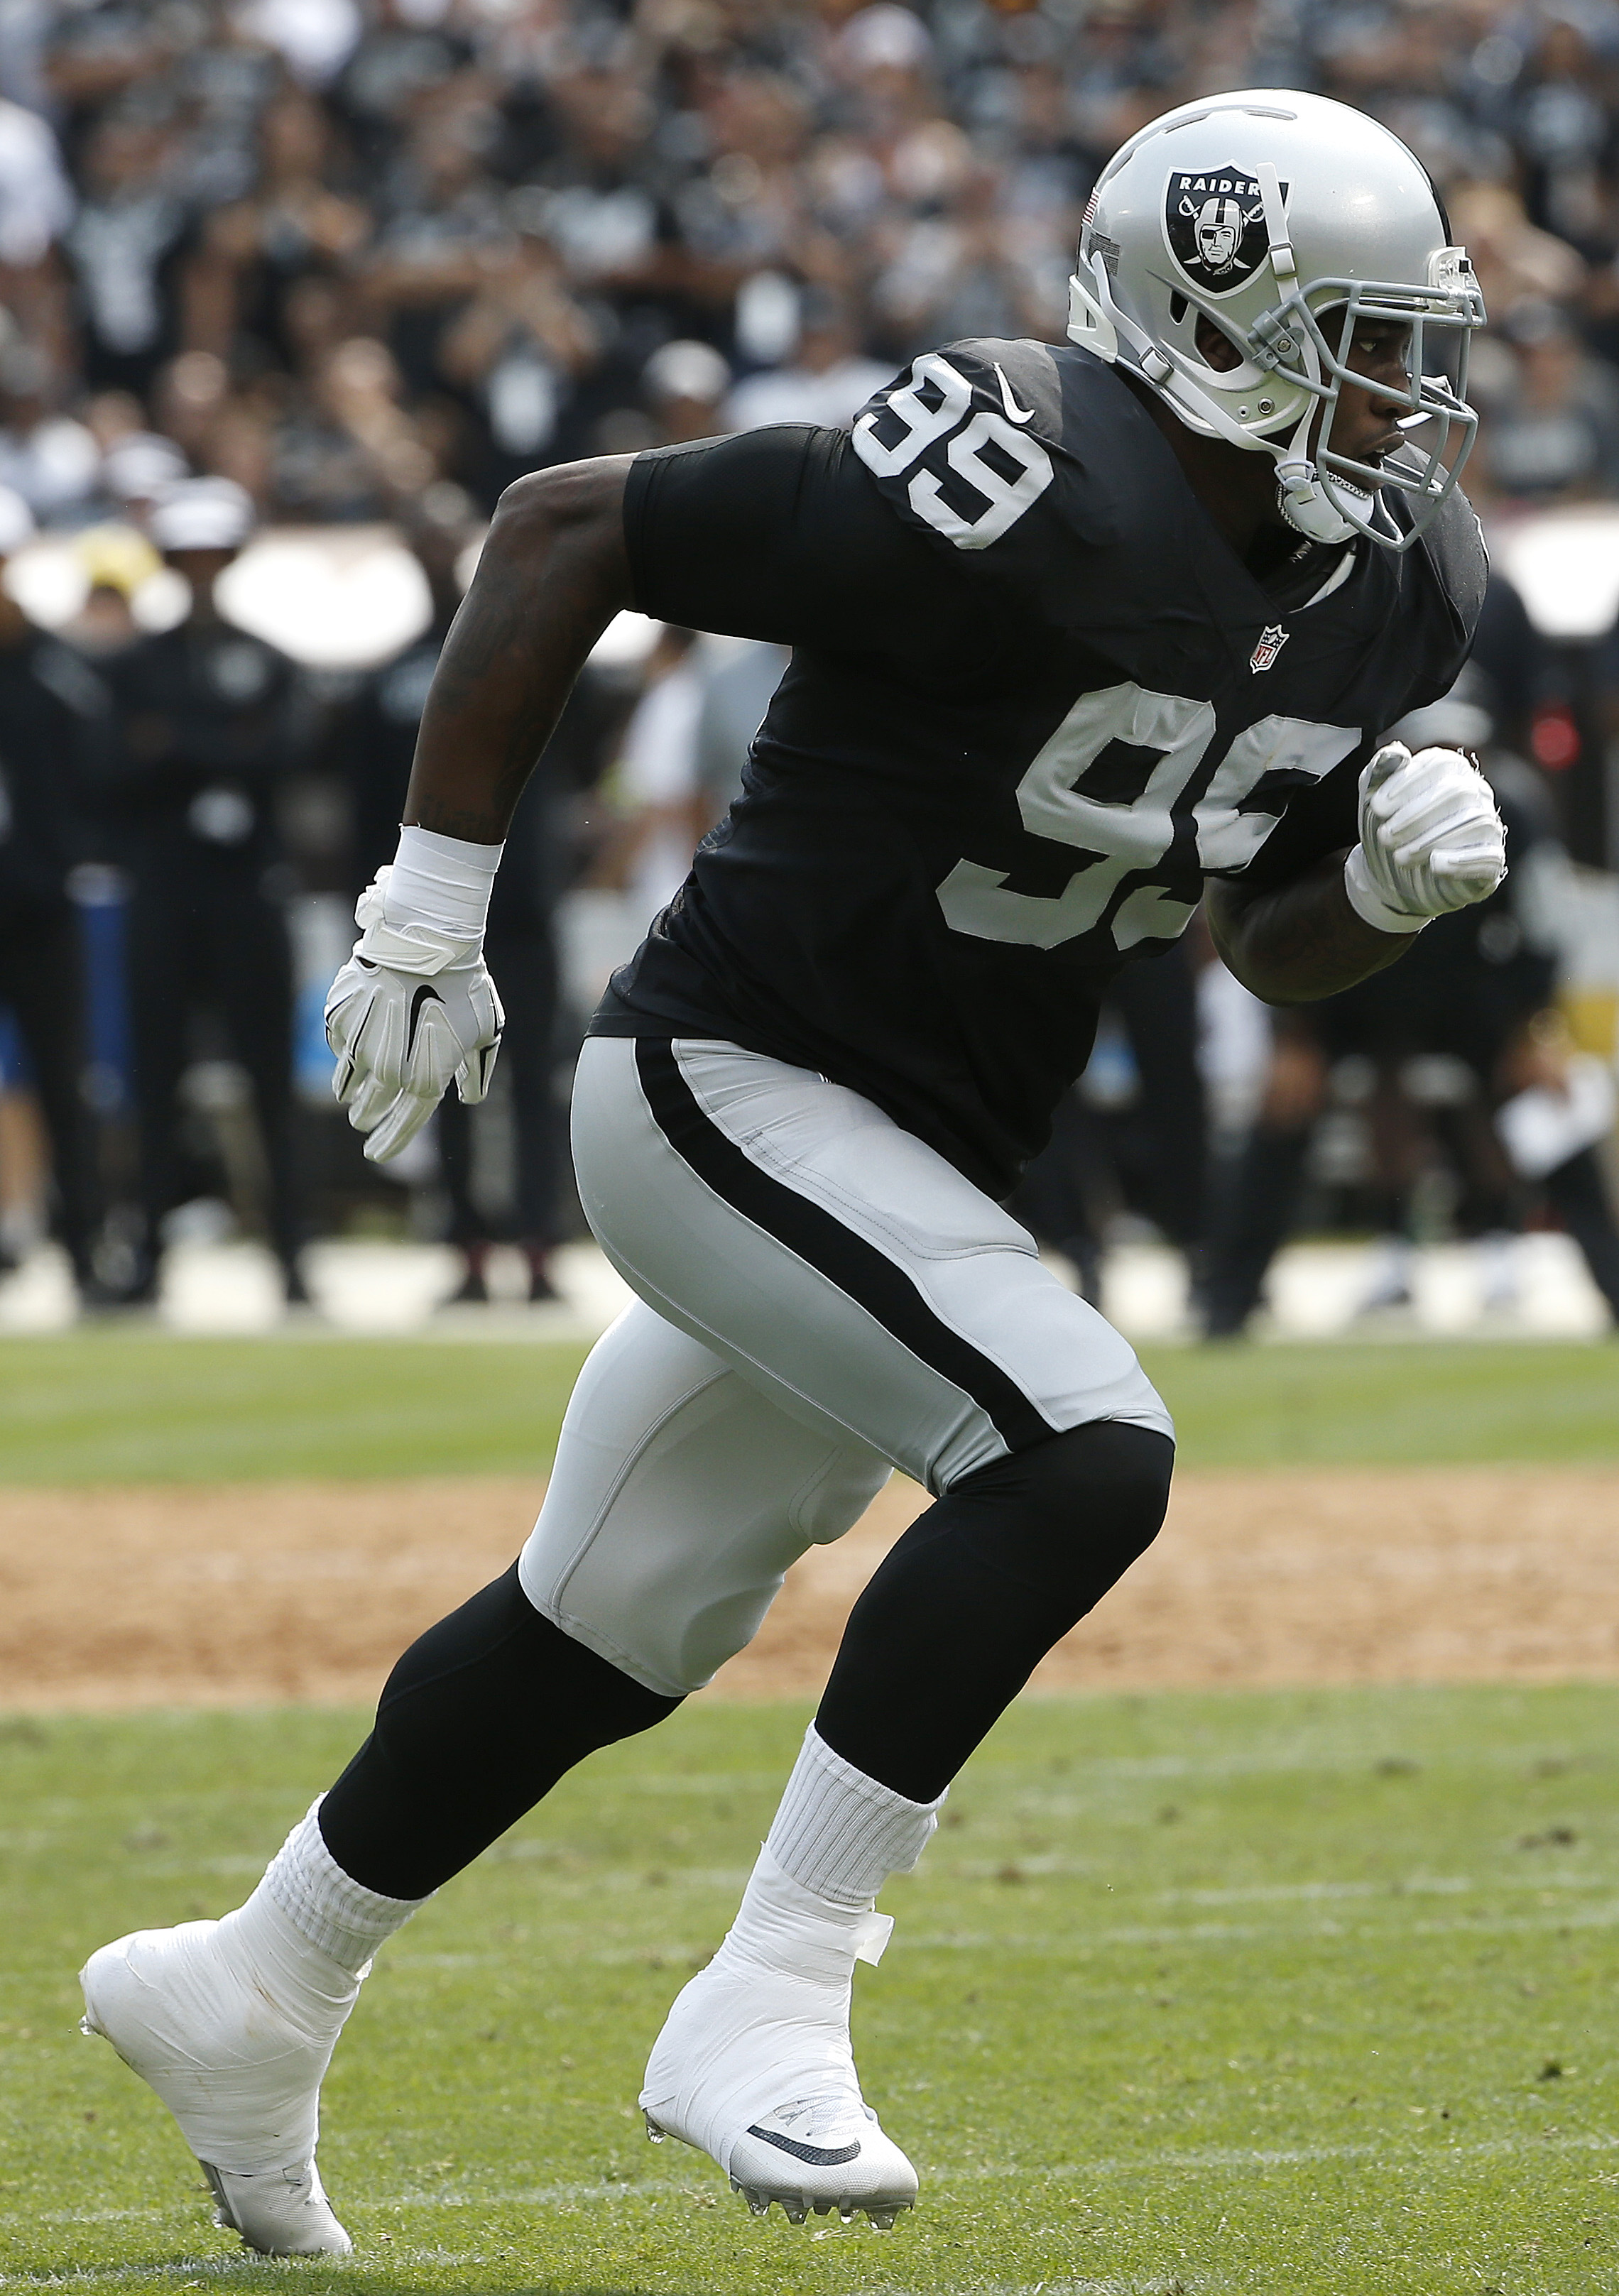 Oakland Raiders linebacker Aldon Smith (99) runs toward the line of scrimmage during the first half of an NFL football game against the Cincinnati Bengals in Oakland, Calif., Sunday, Sept. 13, 2015. (AP Photo/Tony Avelar)